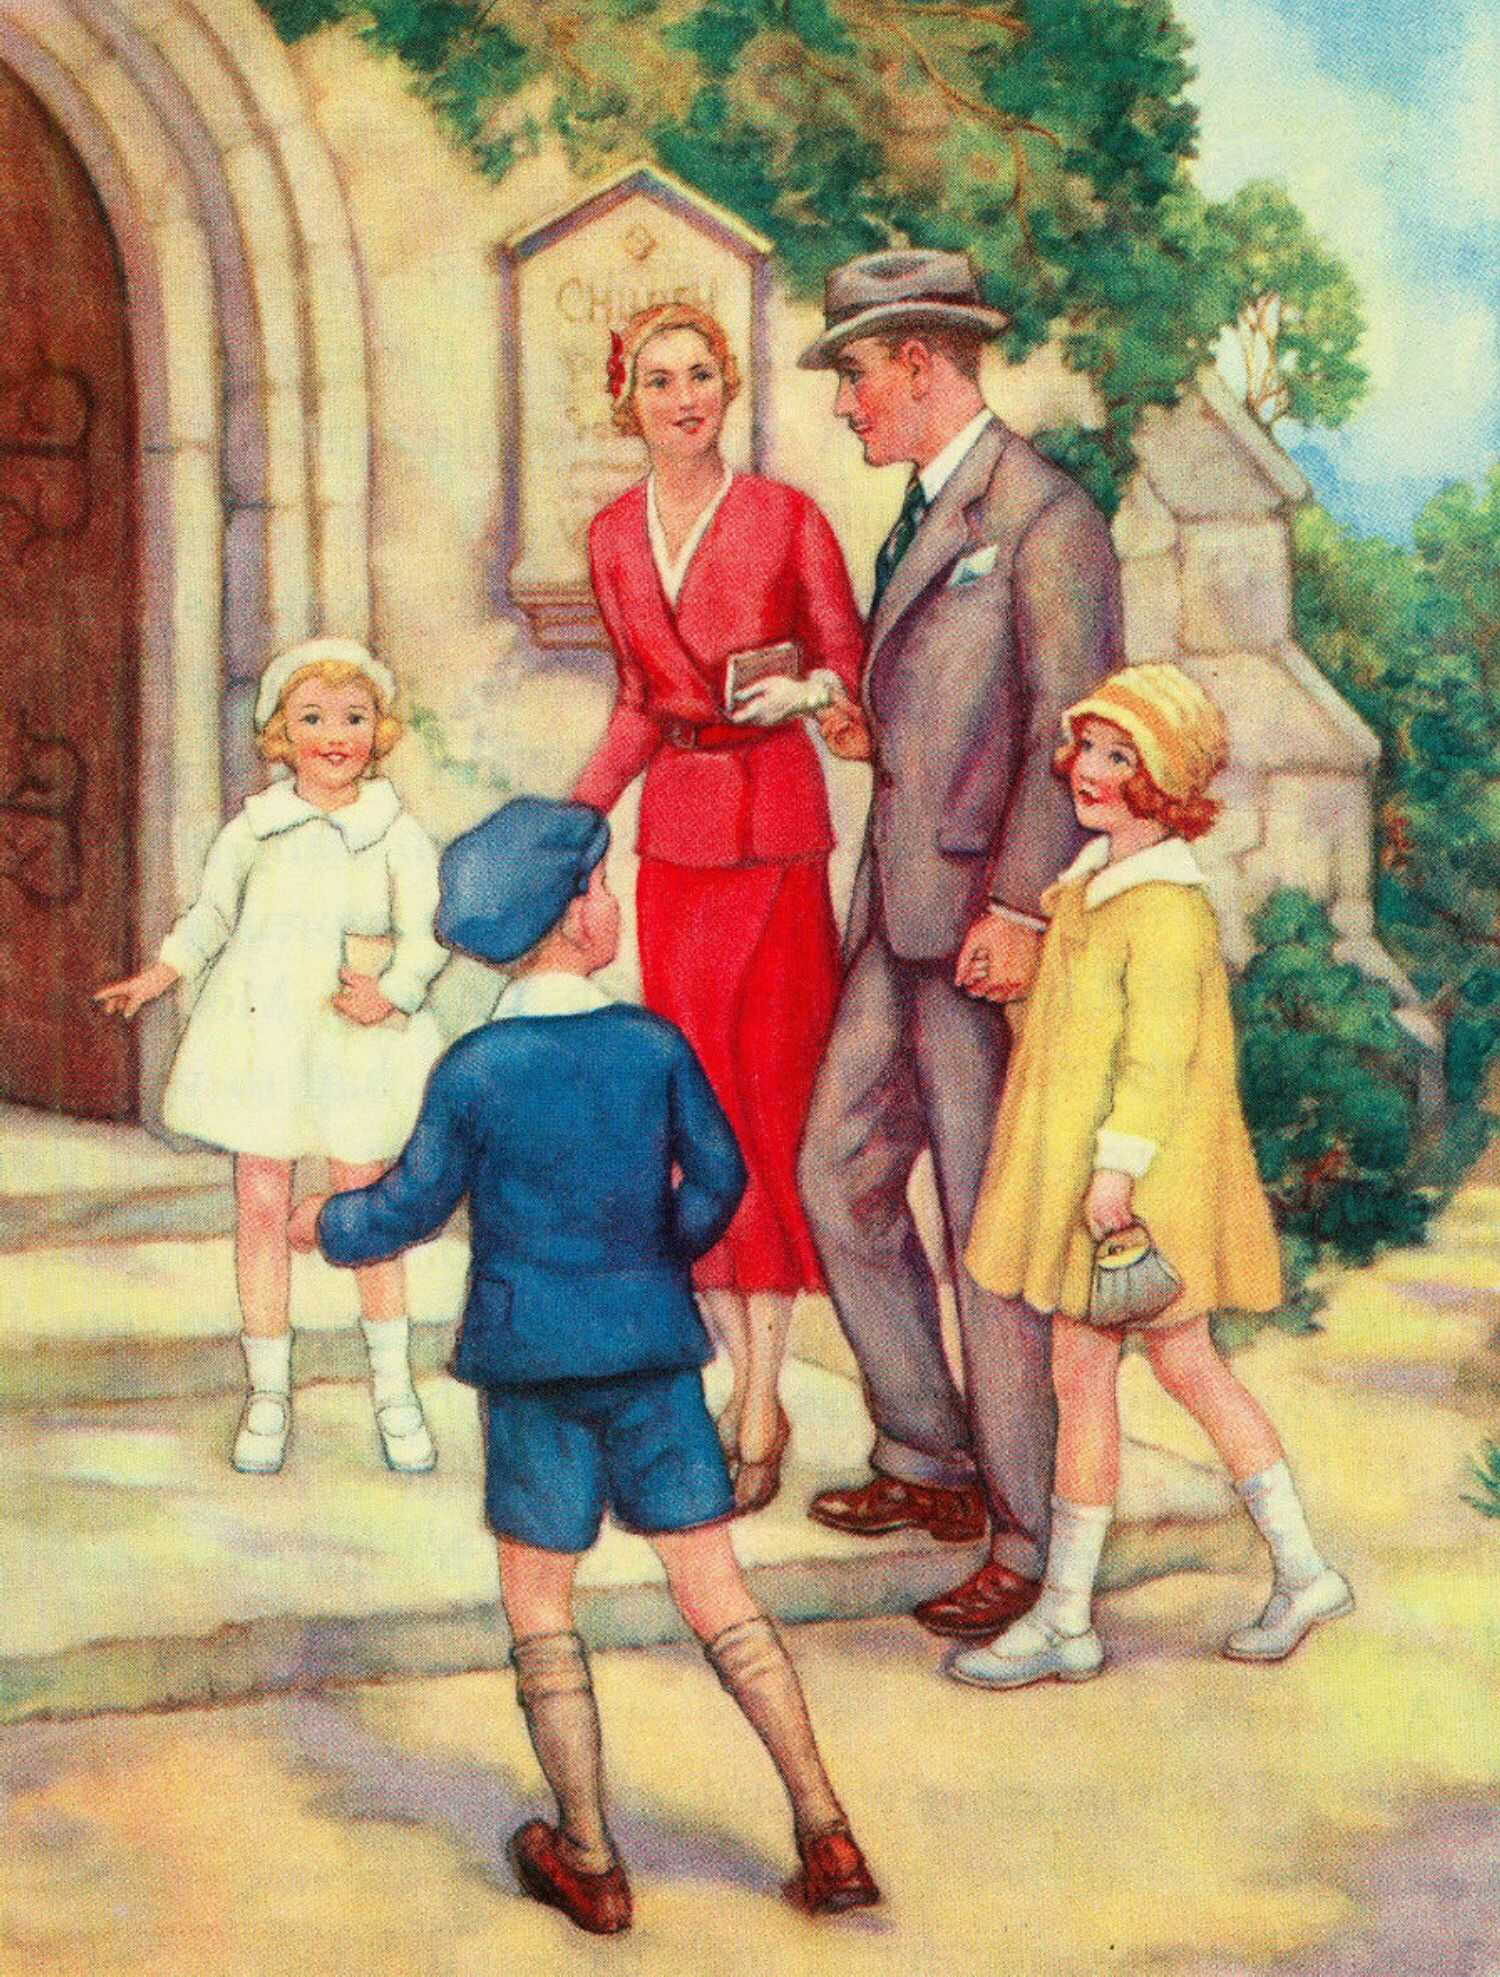 Image result for going to church children's book illustration